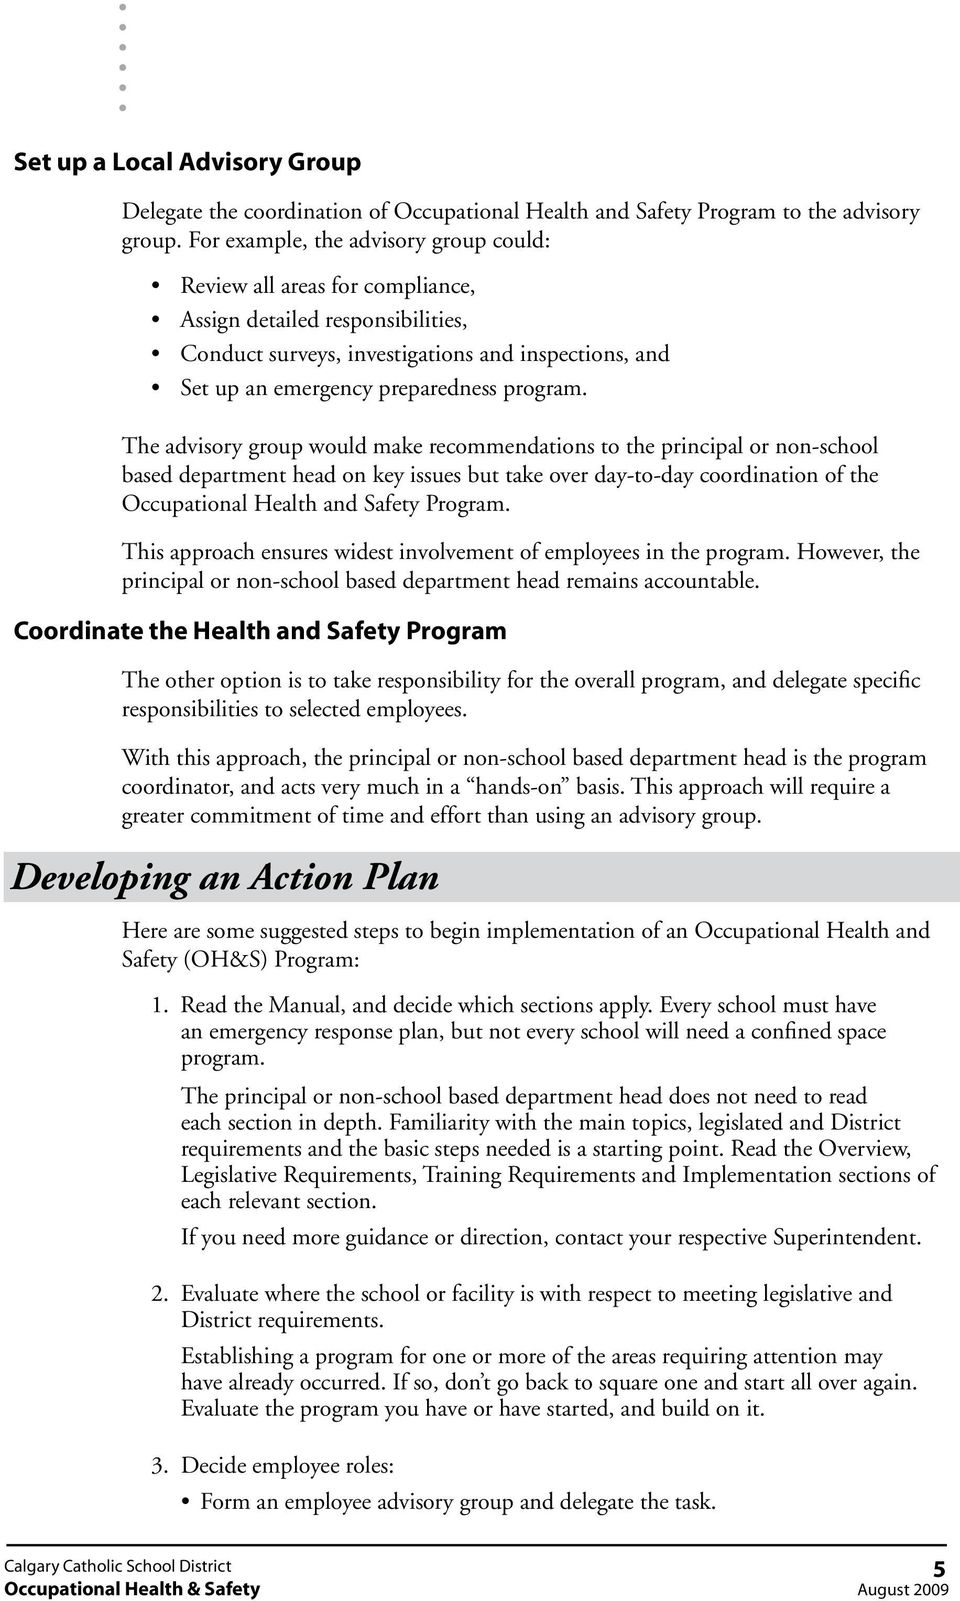 Implementing Occupational Health & Safety in Schools and